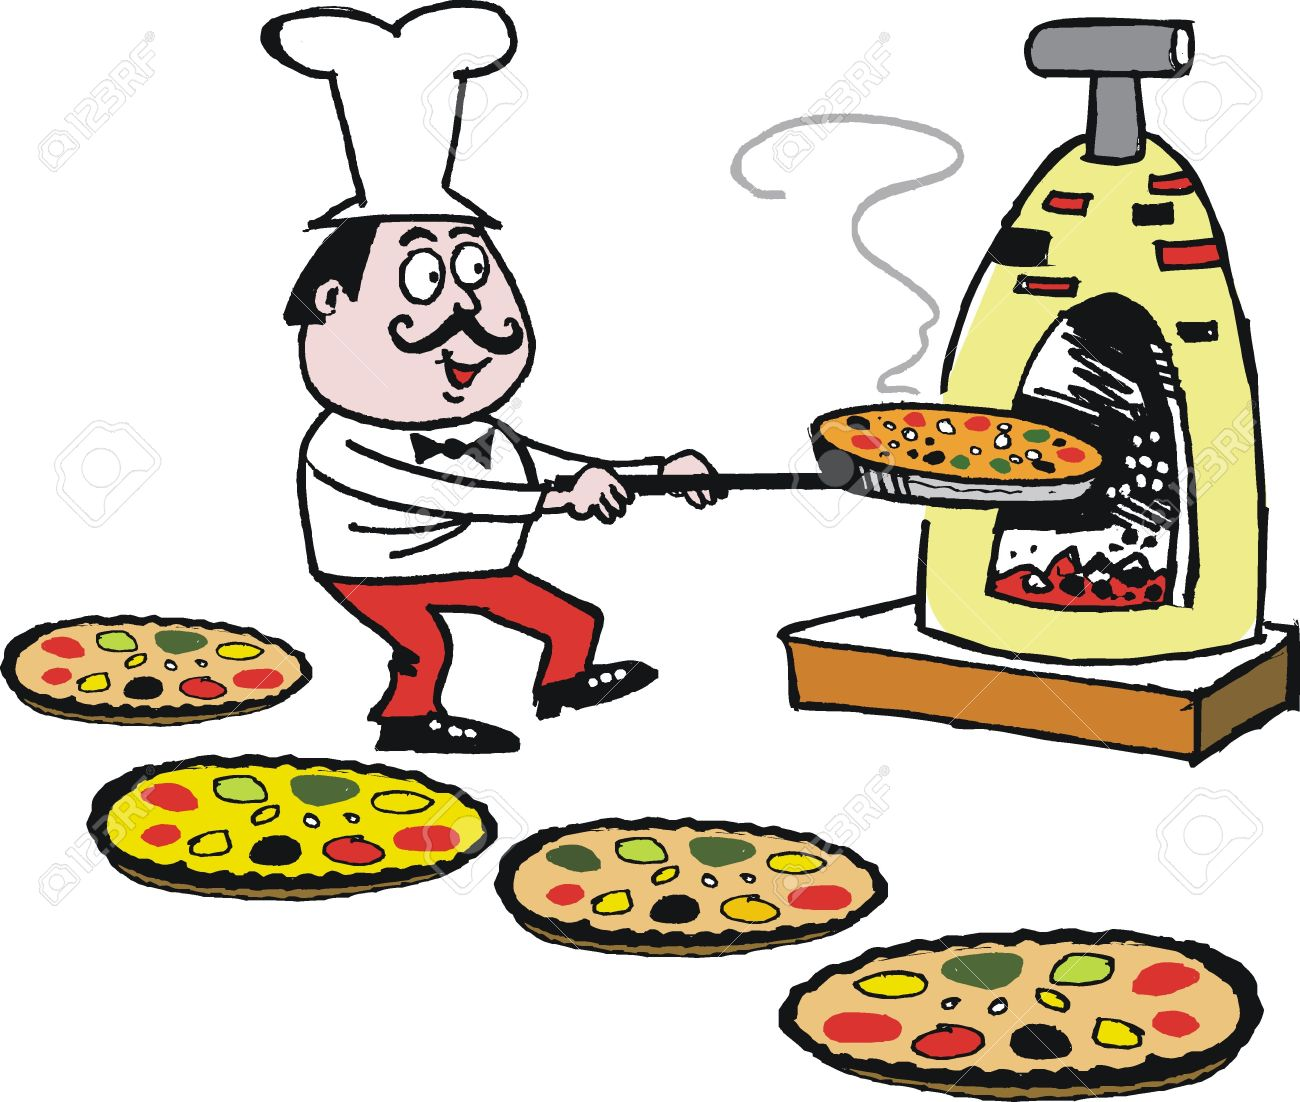 1300x1102 Vector Cartoon Of Chef Making Pizzas In Oven Royalty Free Cliparts